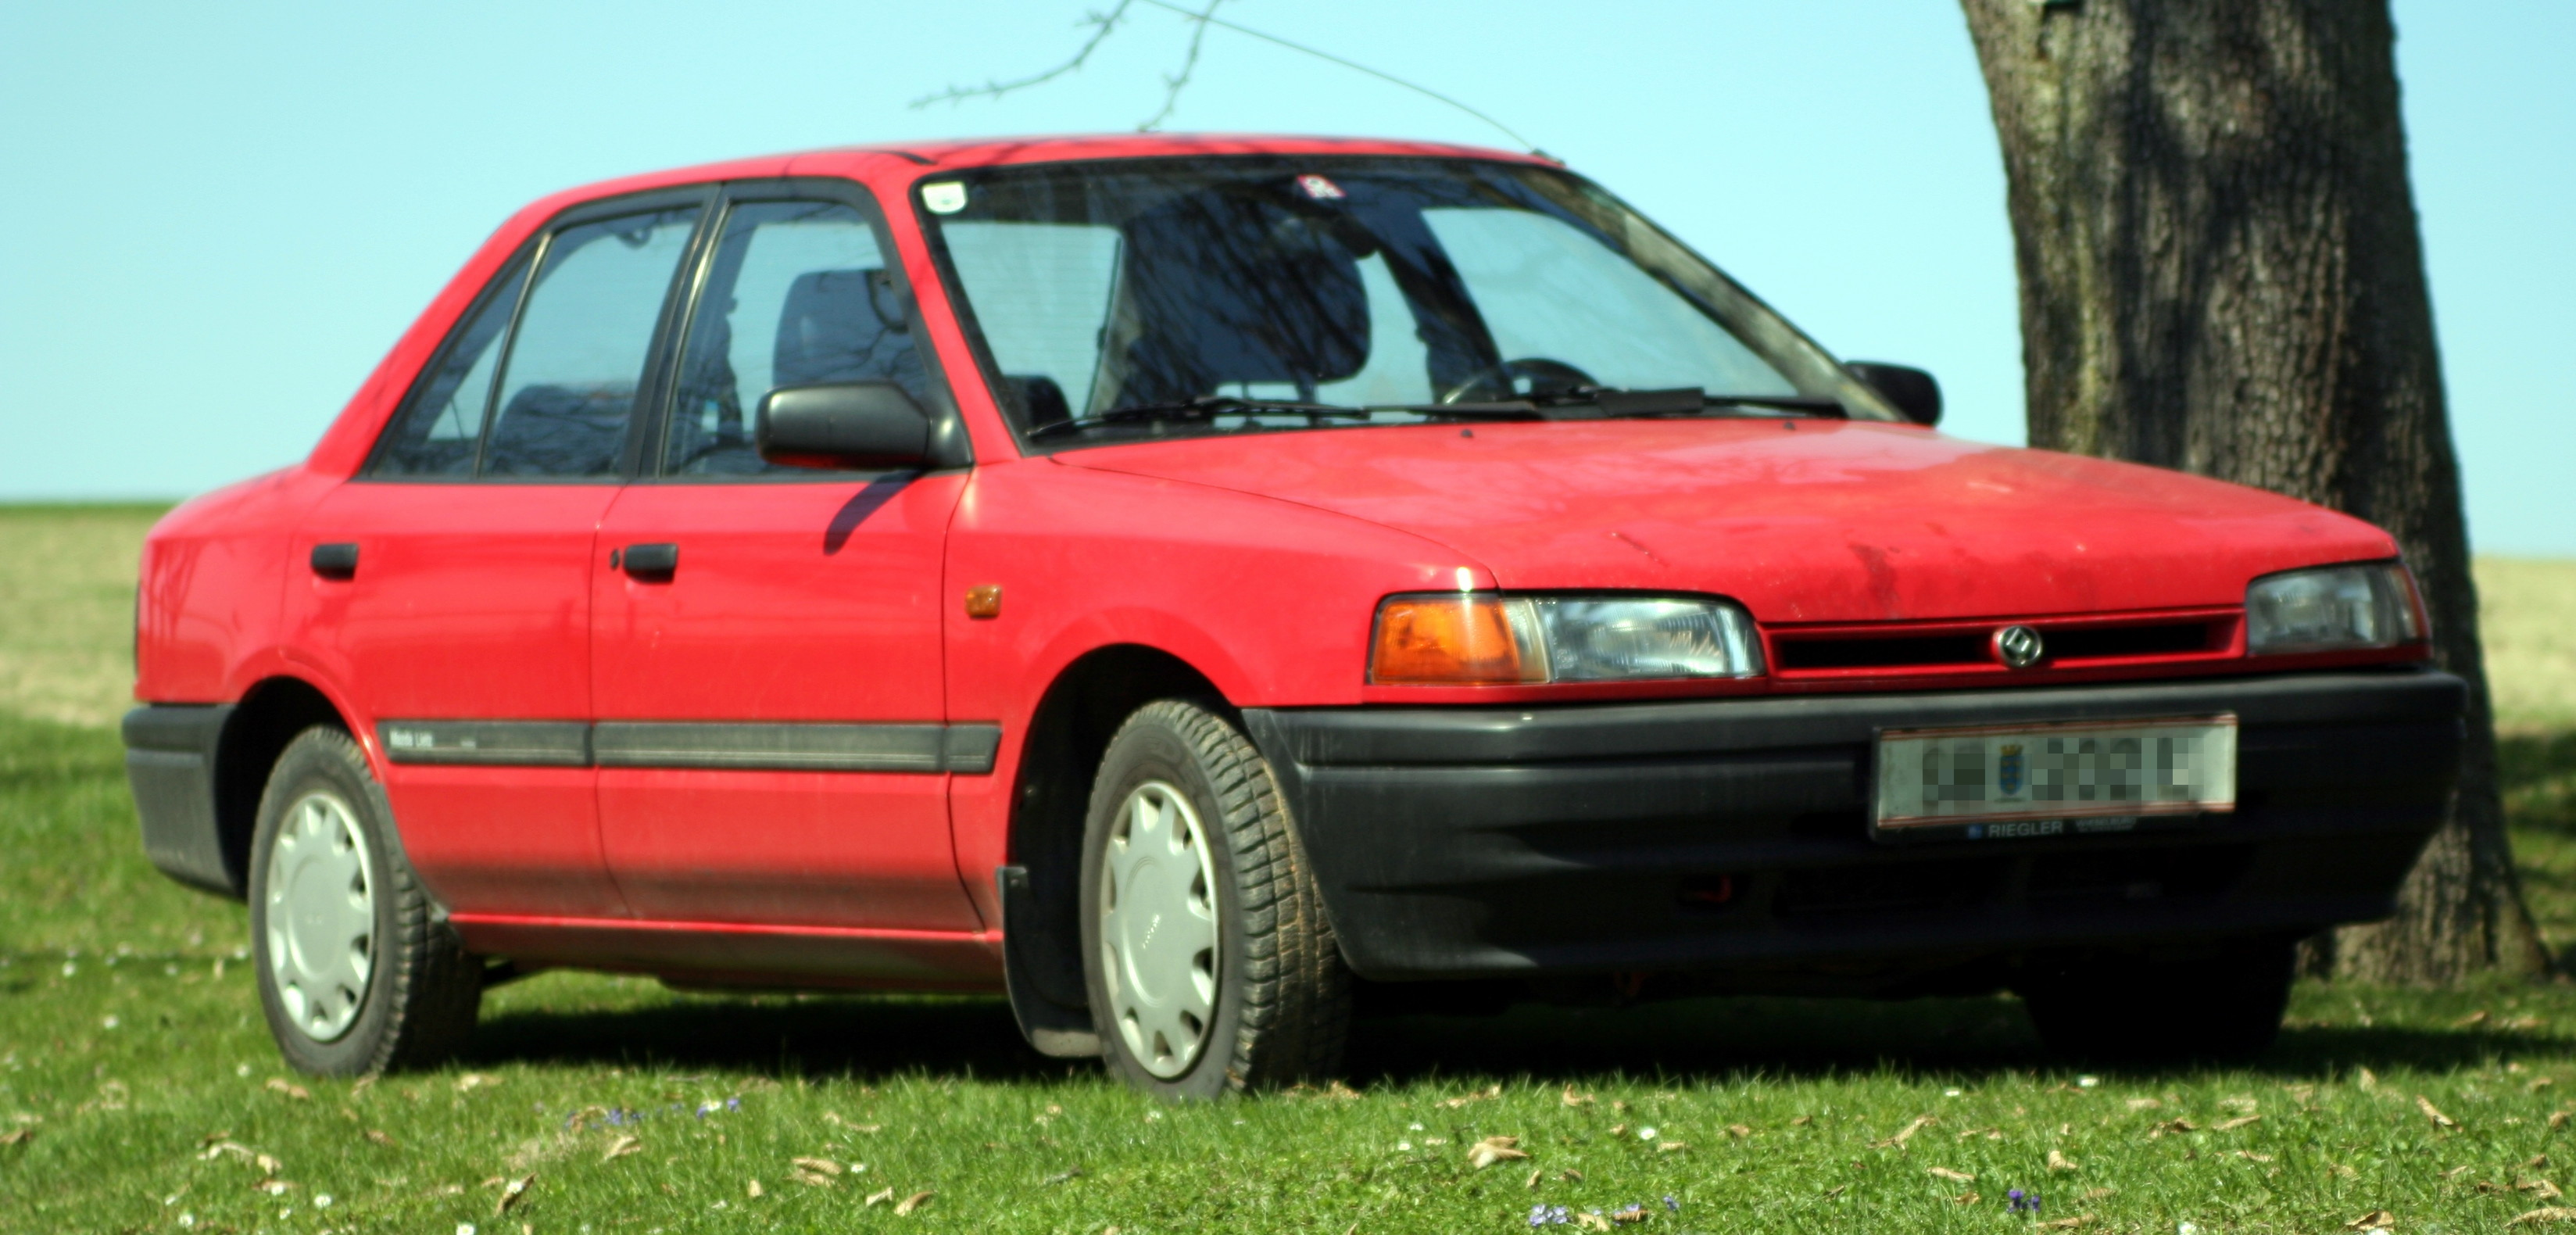 mazda astina wikipedia with File Mazda 323 on File 2003 Mazda 323  BJ II  Astina Shades 5 Door hatchback 01 additionally File mazda 323 hatch front moreover Images together with File 1st Ford Festiva furthermore File Mazda 323f rear 20071002.